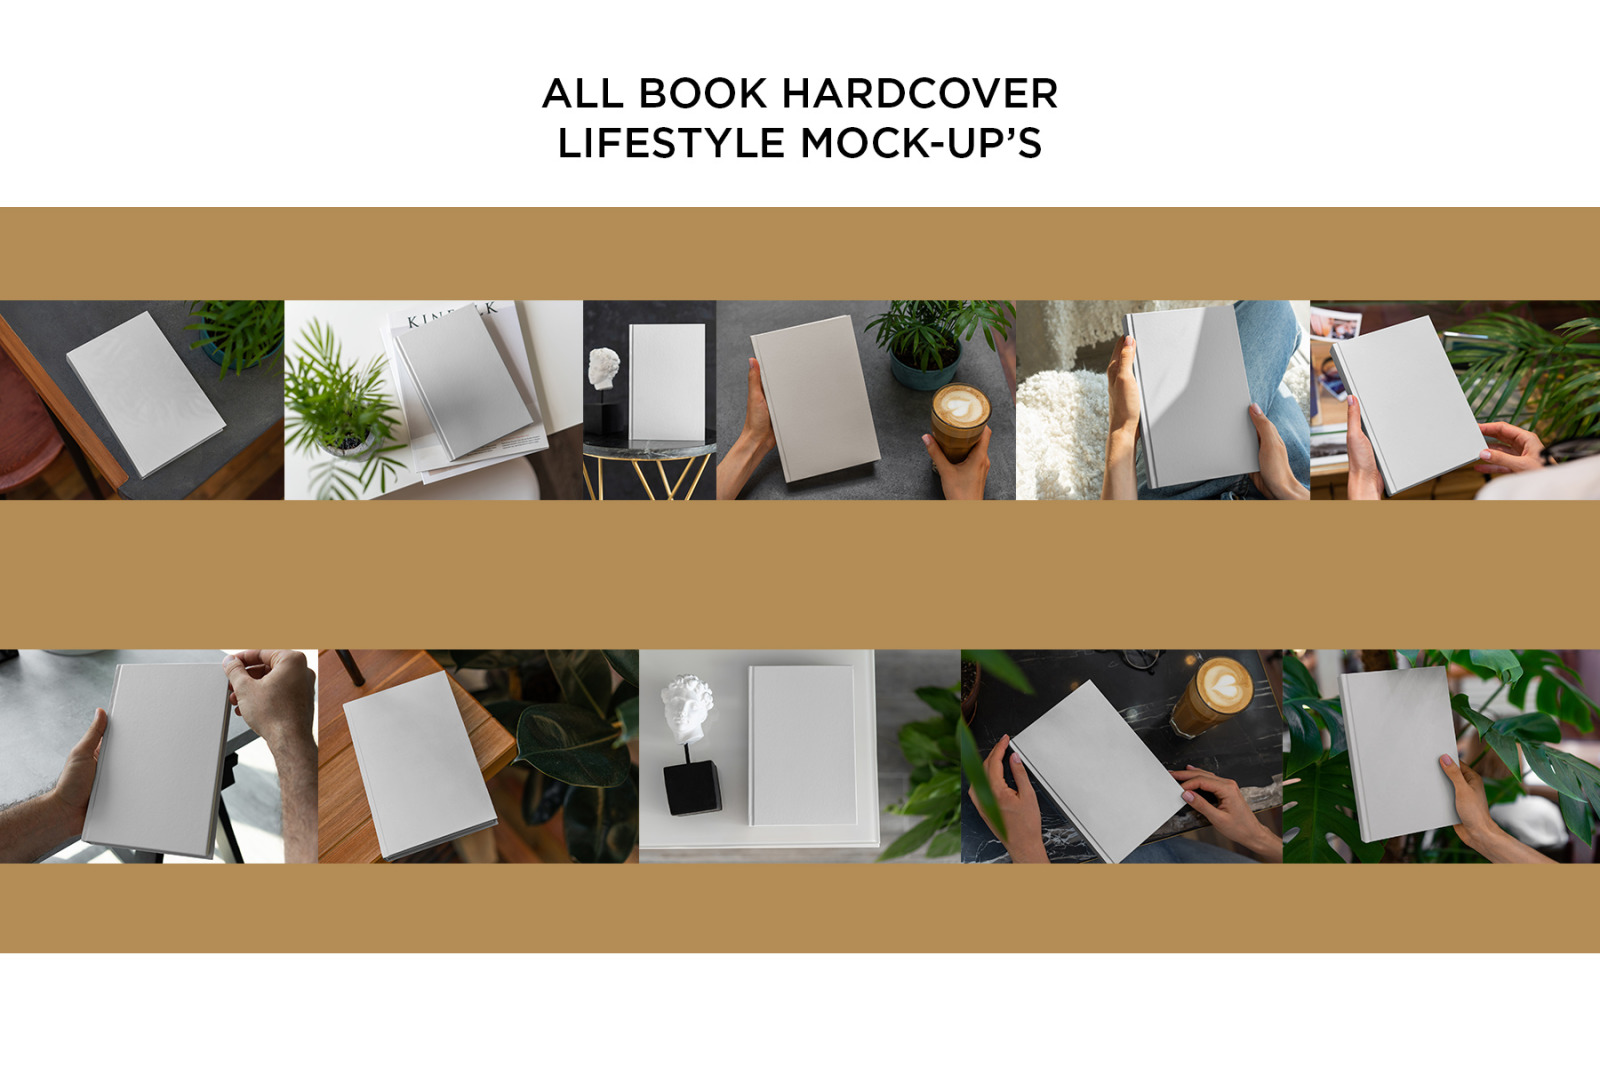 Book Hardcover Lifestyle Mockup